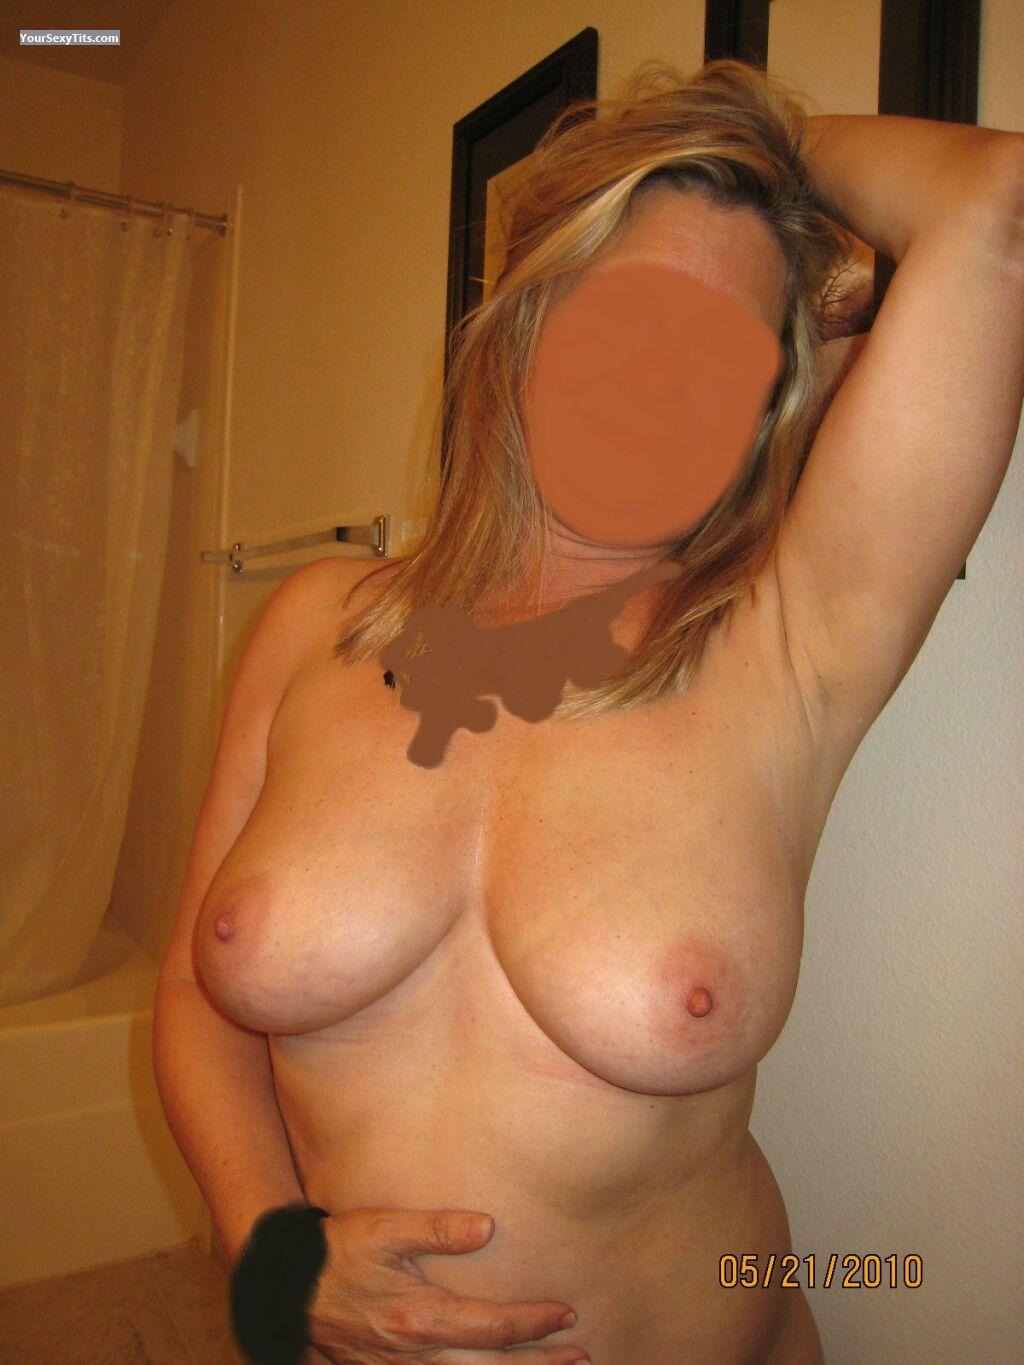 Tit Flash: Medium Tits - Natural50 from United States